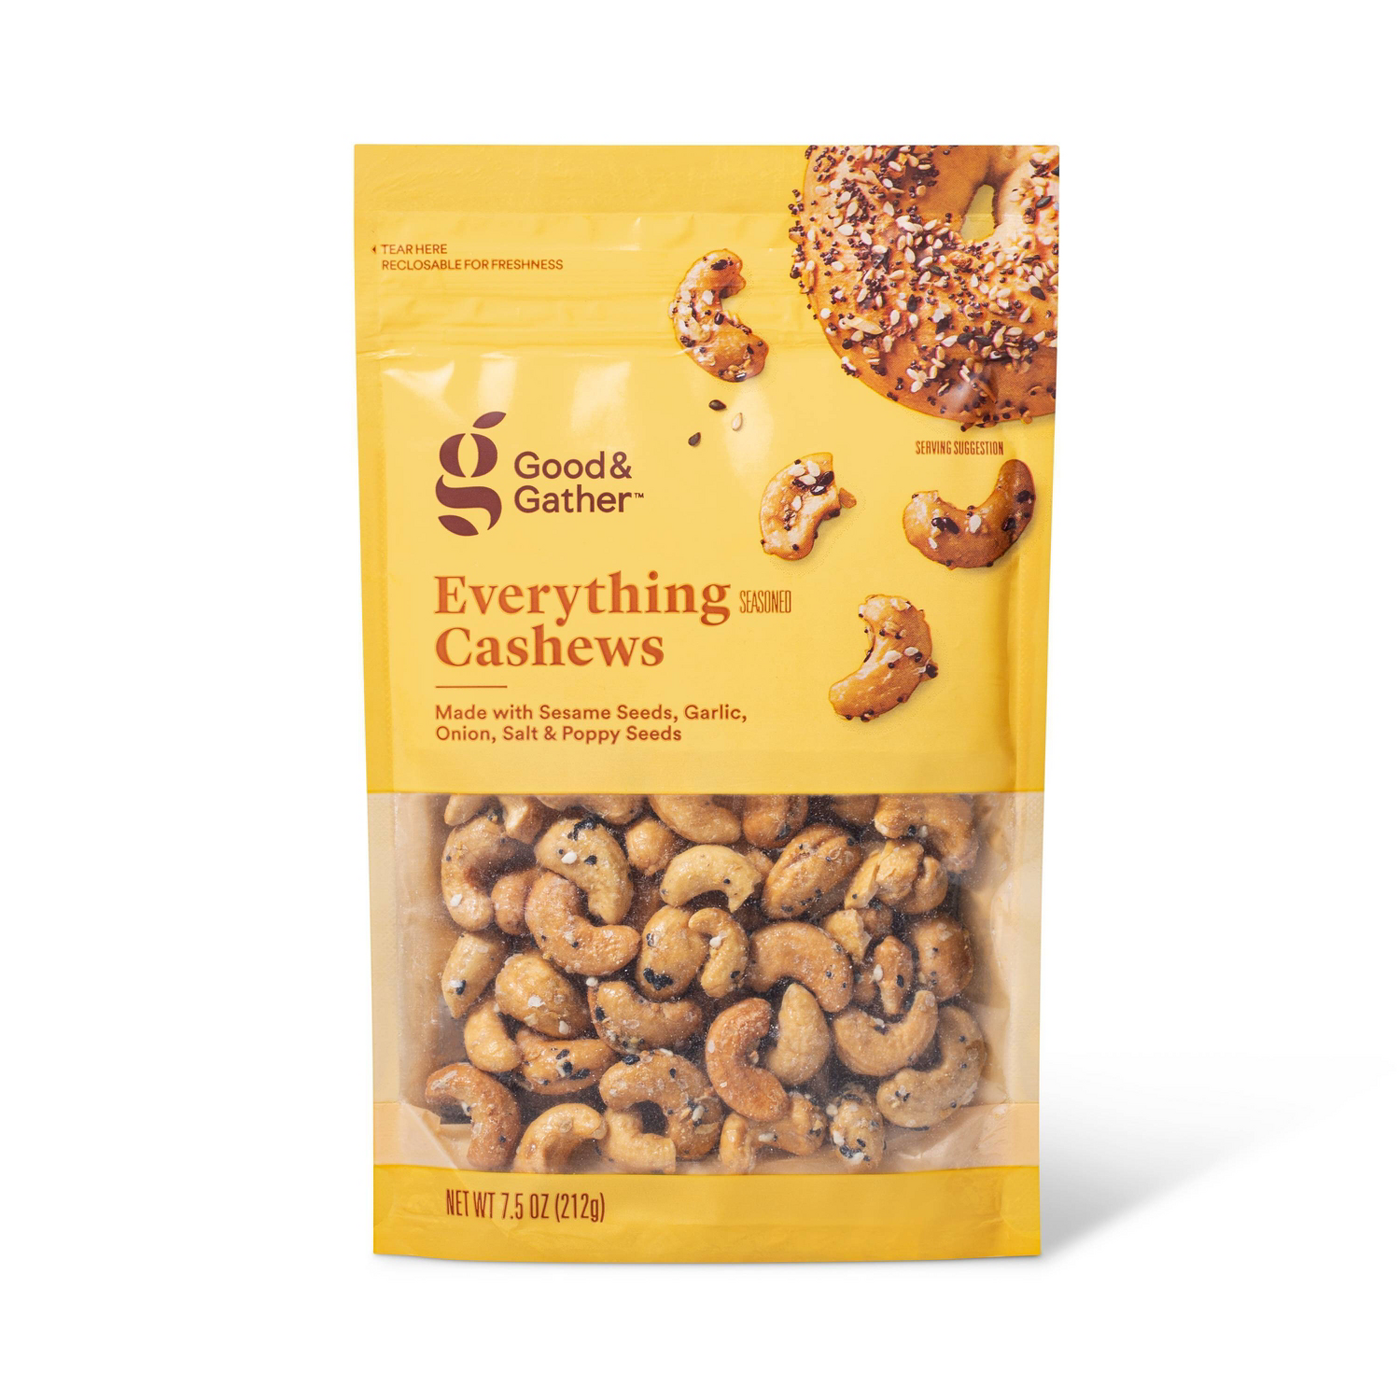 a bag of Everything Seasoned Cashews on a white background